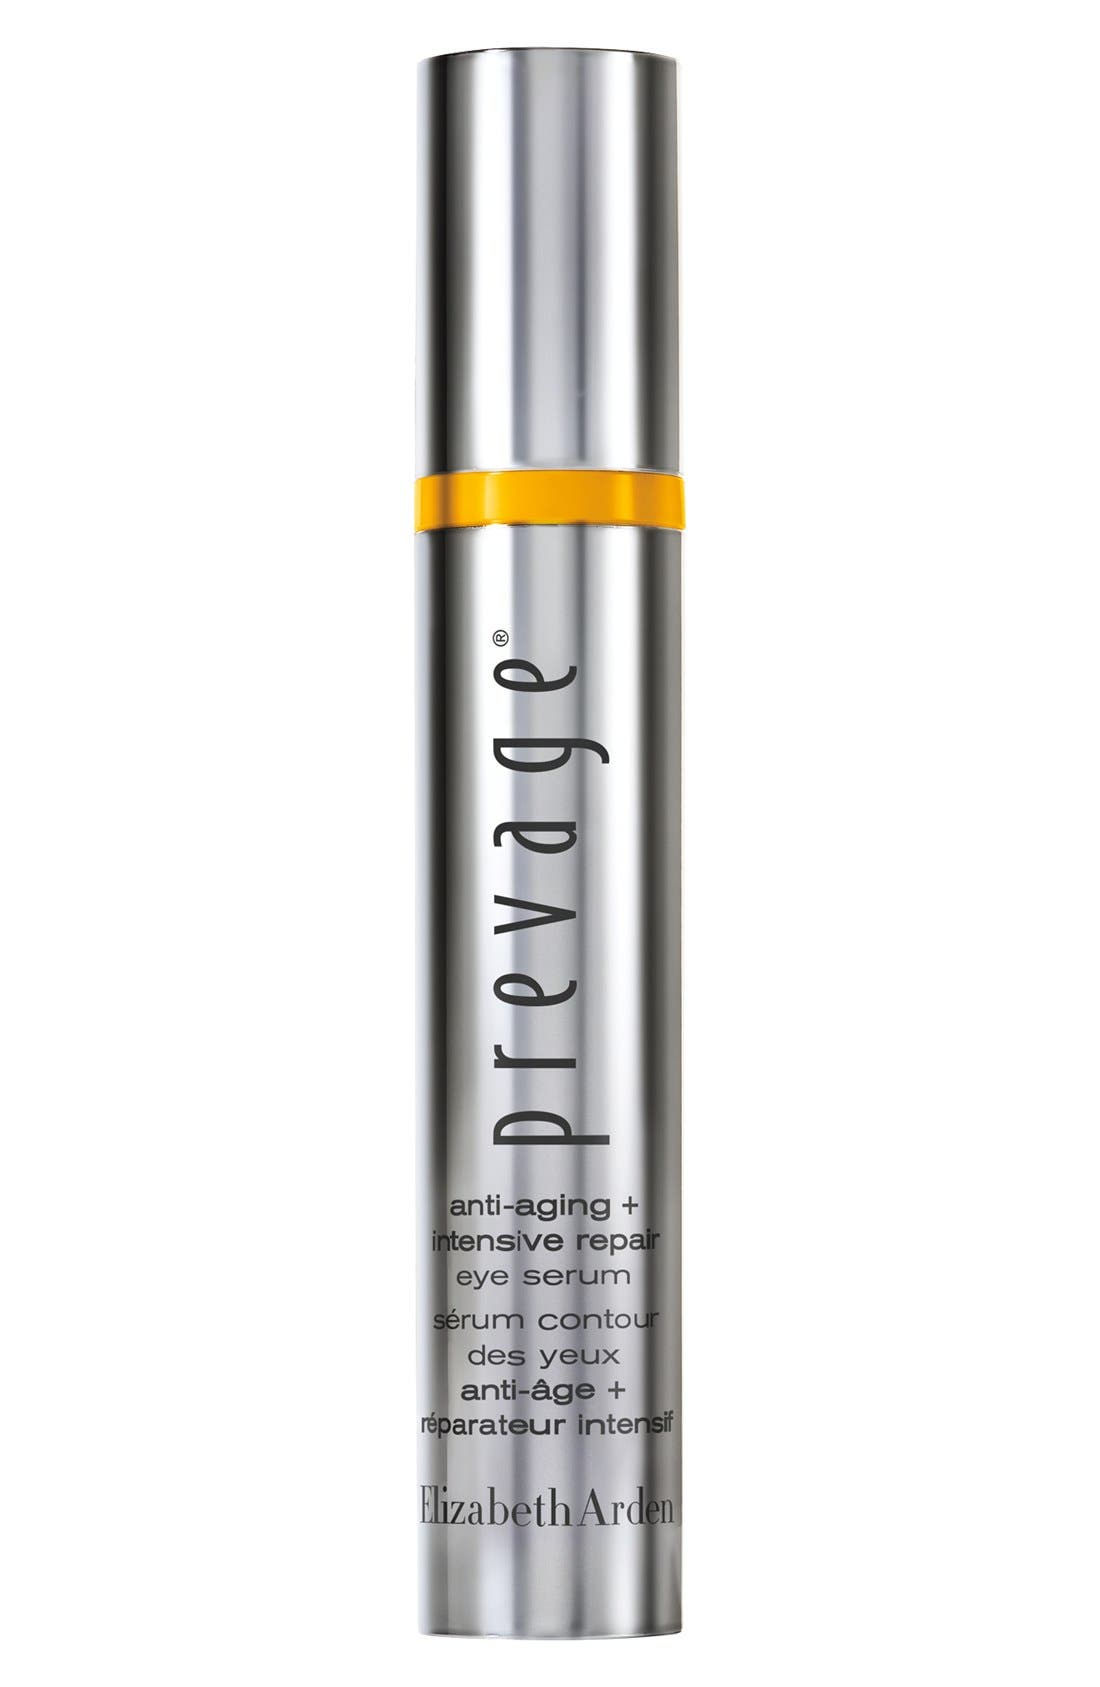 PREVAGE® 'Anti-Aging + Intensive Repair' Eye Serum